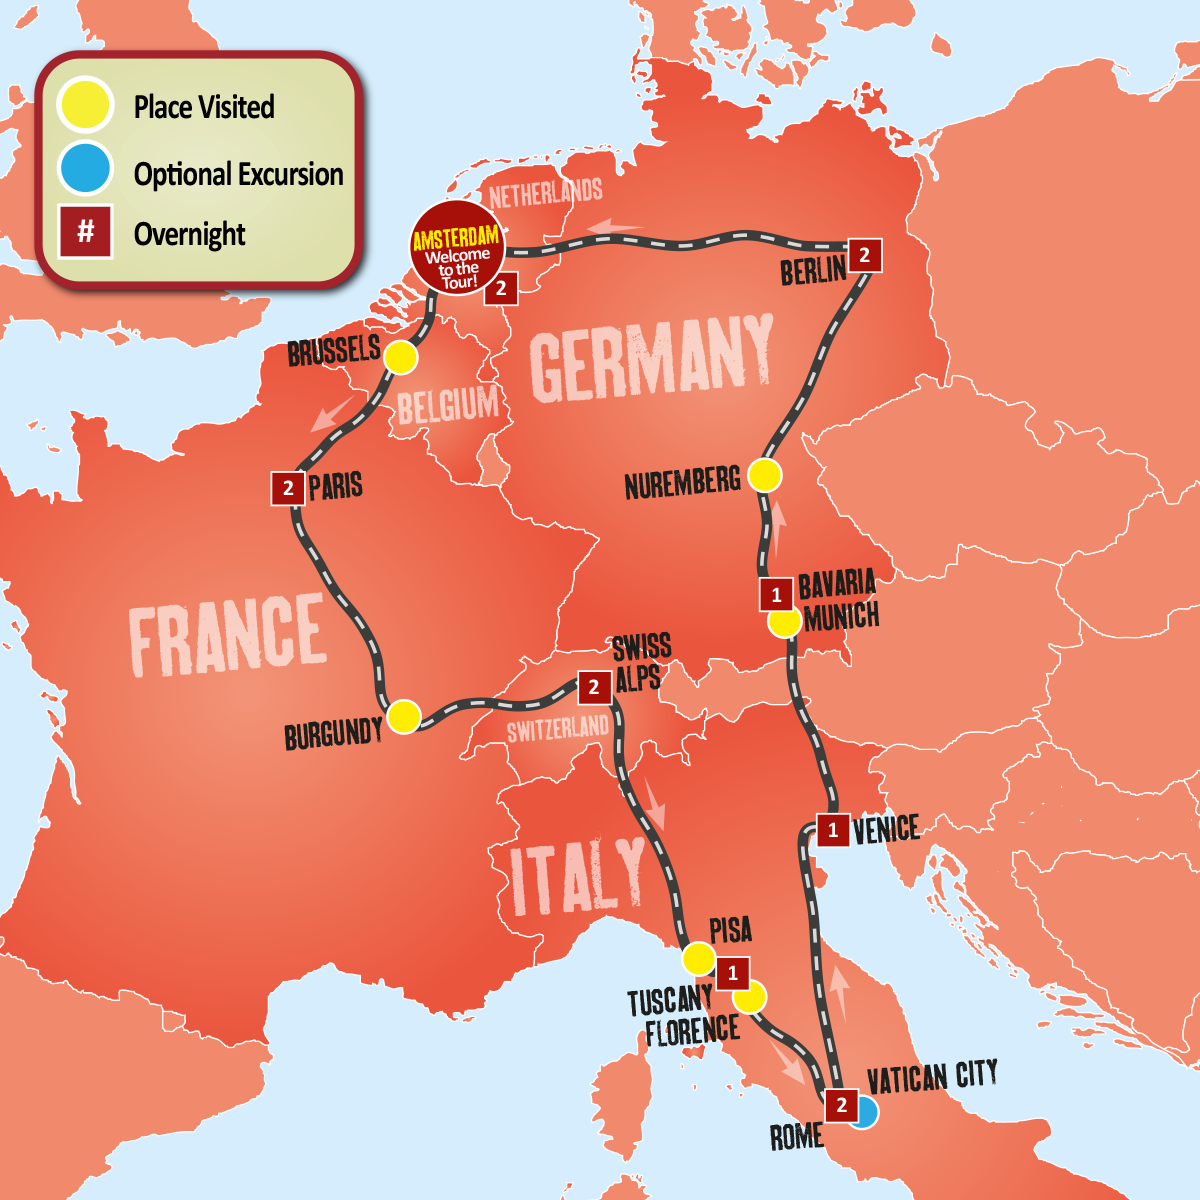 Paris Europe Map.Paris Rome Berlin Europe Coach Tour Expat Explore